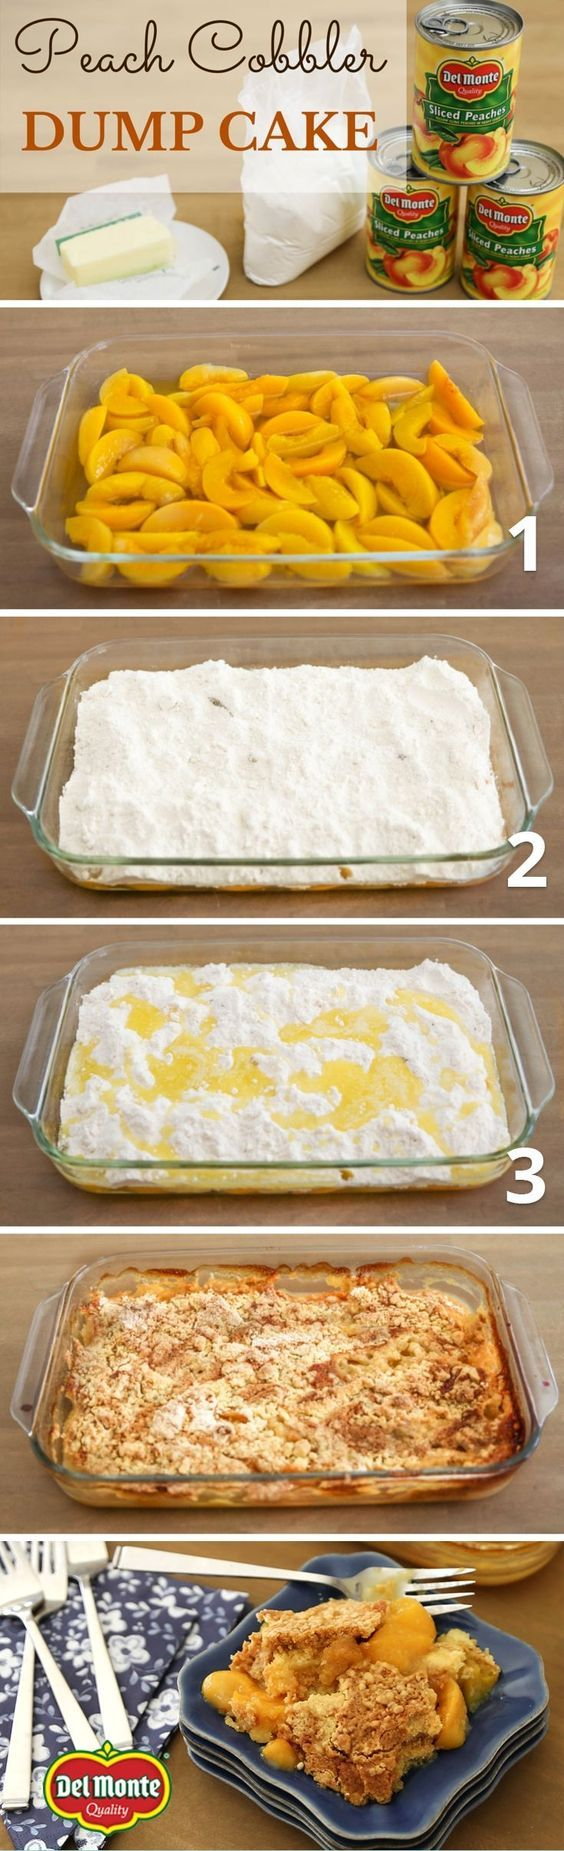 Peach Cobbler Dump Cake: 3 cans (15.25oz.each) Del Monte® Sliced Peaches in Heavy Syrup, 1 pkg. yellow cake mix, ½ cup butter, melted: